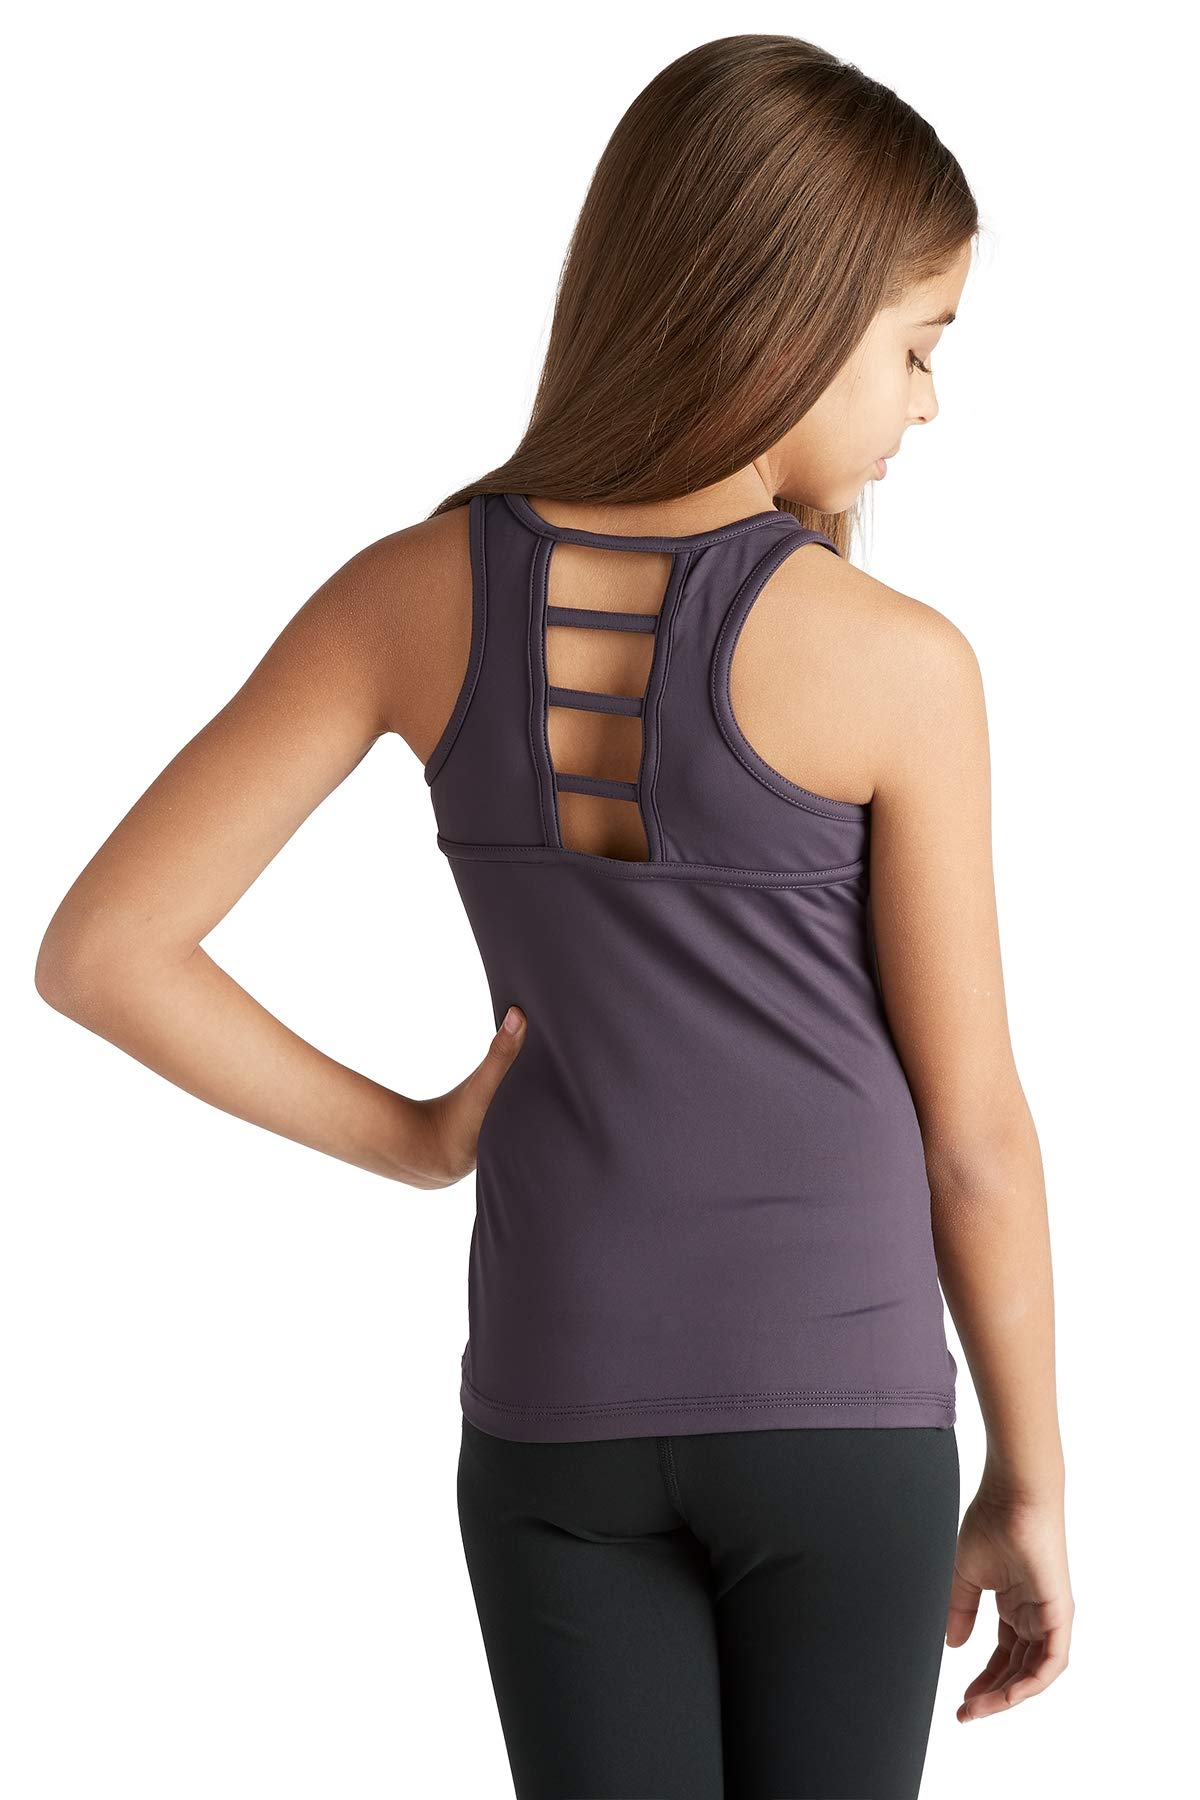 Liakada Girls Wide Strap Ladder-Back Tank Top for Dance, Gym, Yoga, Cheer! Plum by Liakada